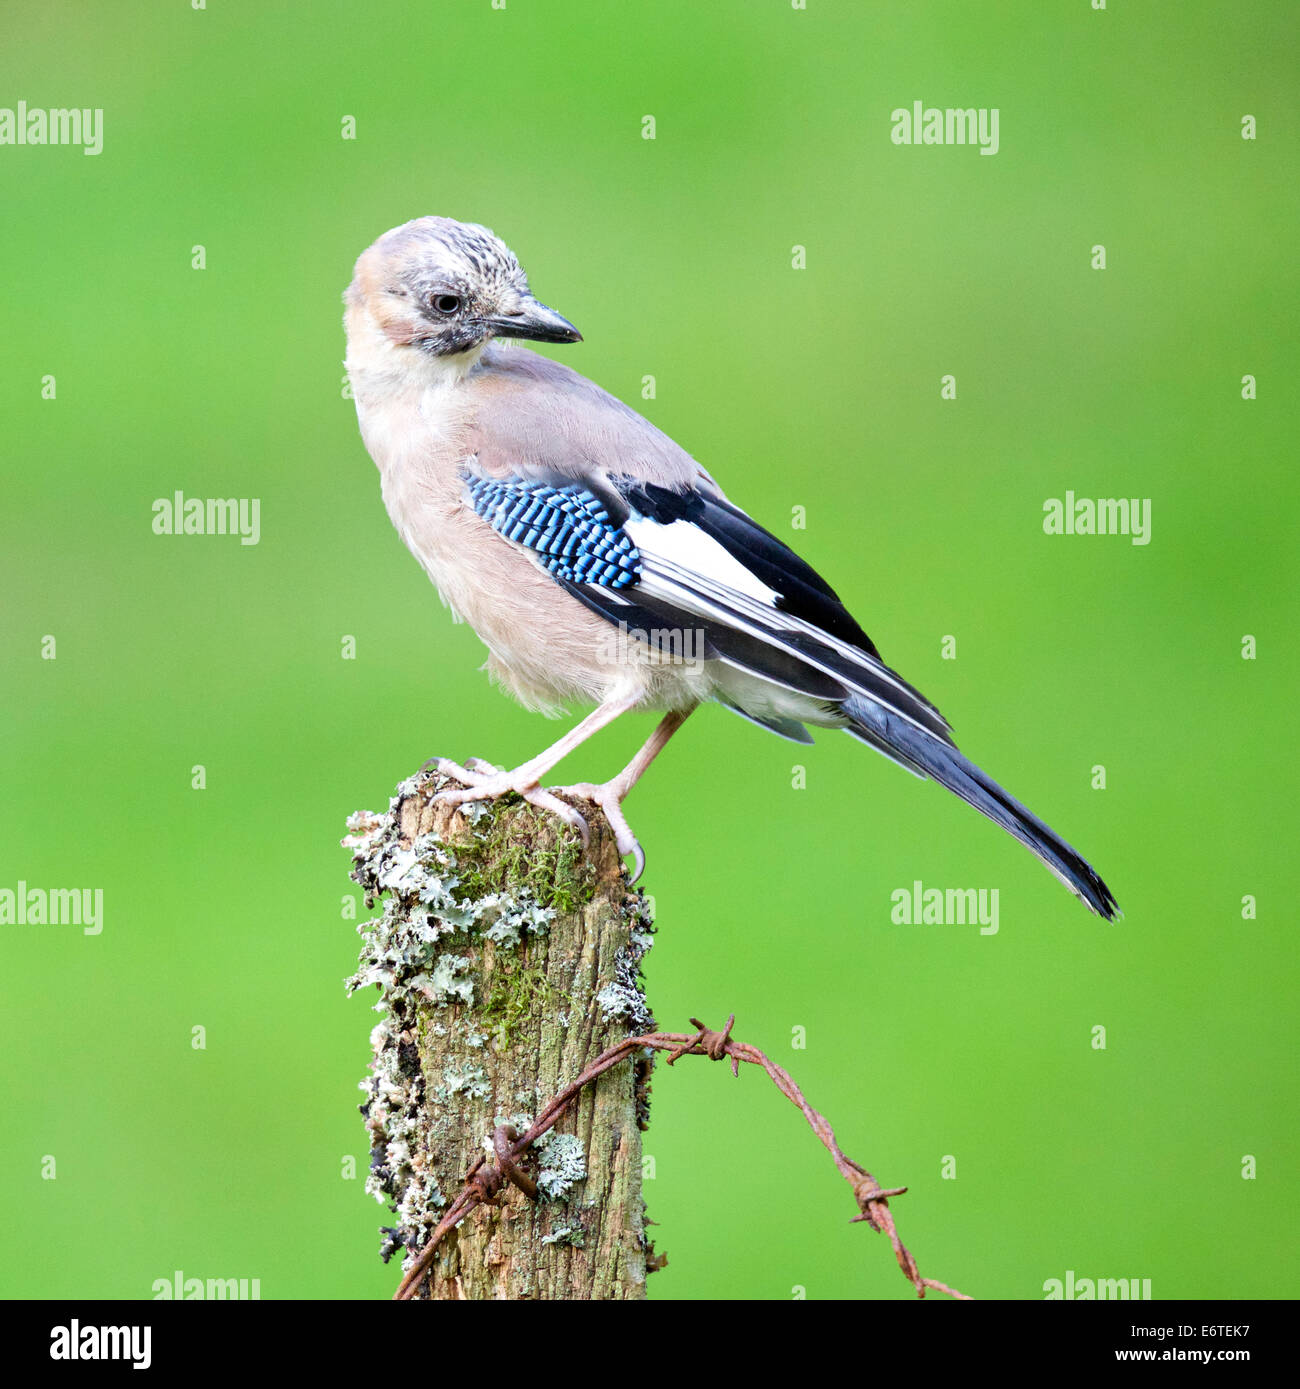 The majestic Jay perched on the old fence post #3364 - Stock Image